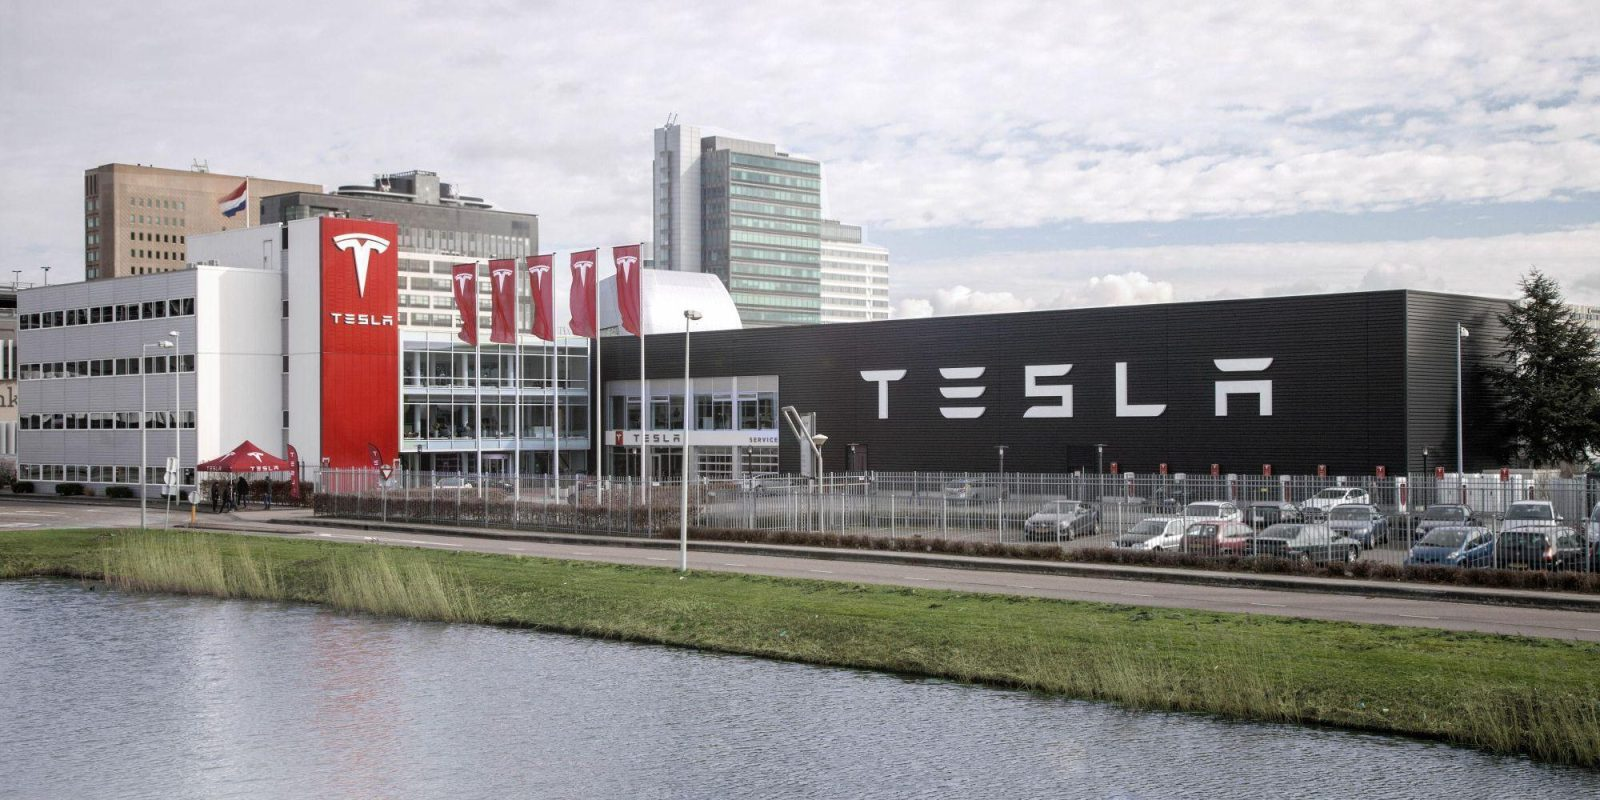 Tesla Model 3 becomes best-selling car in the Netherlands with 10,000 units